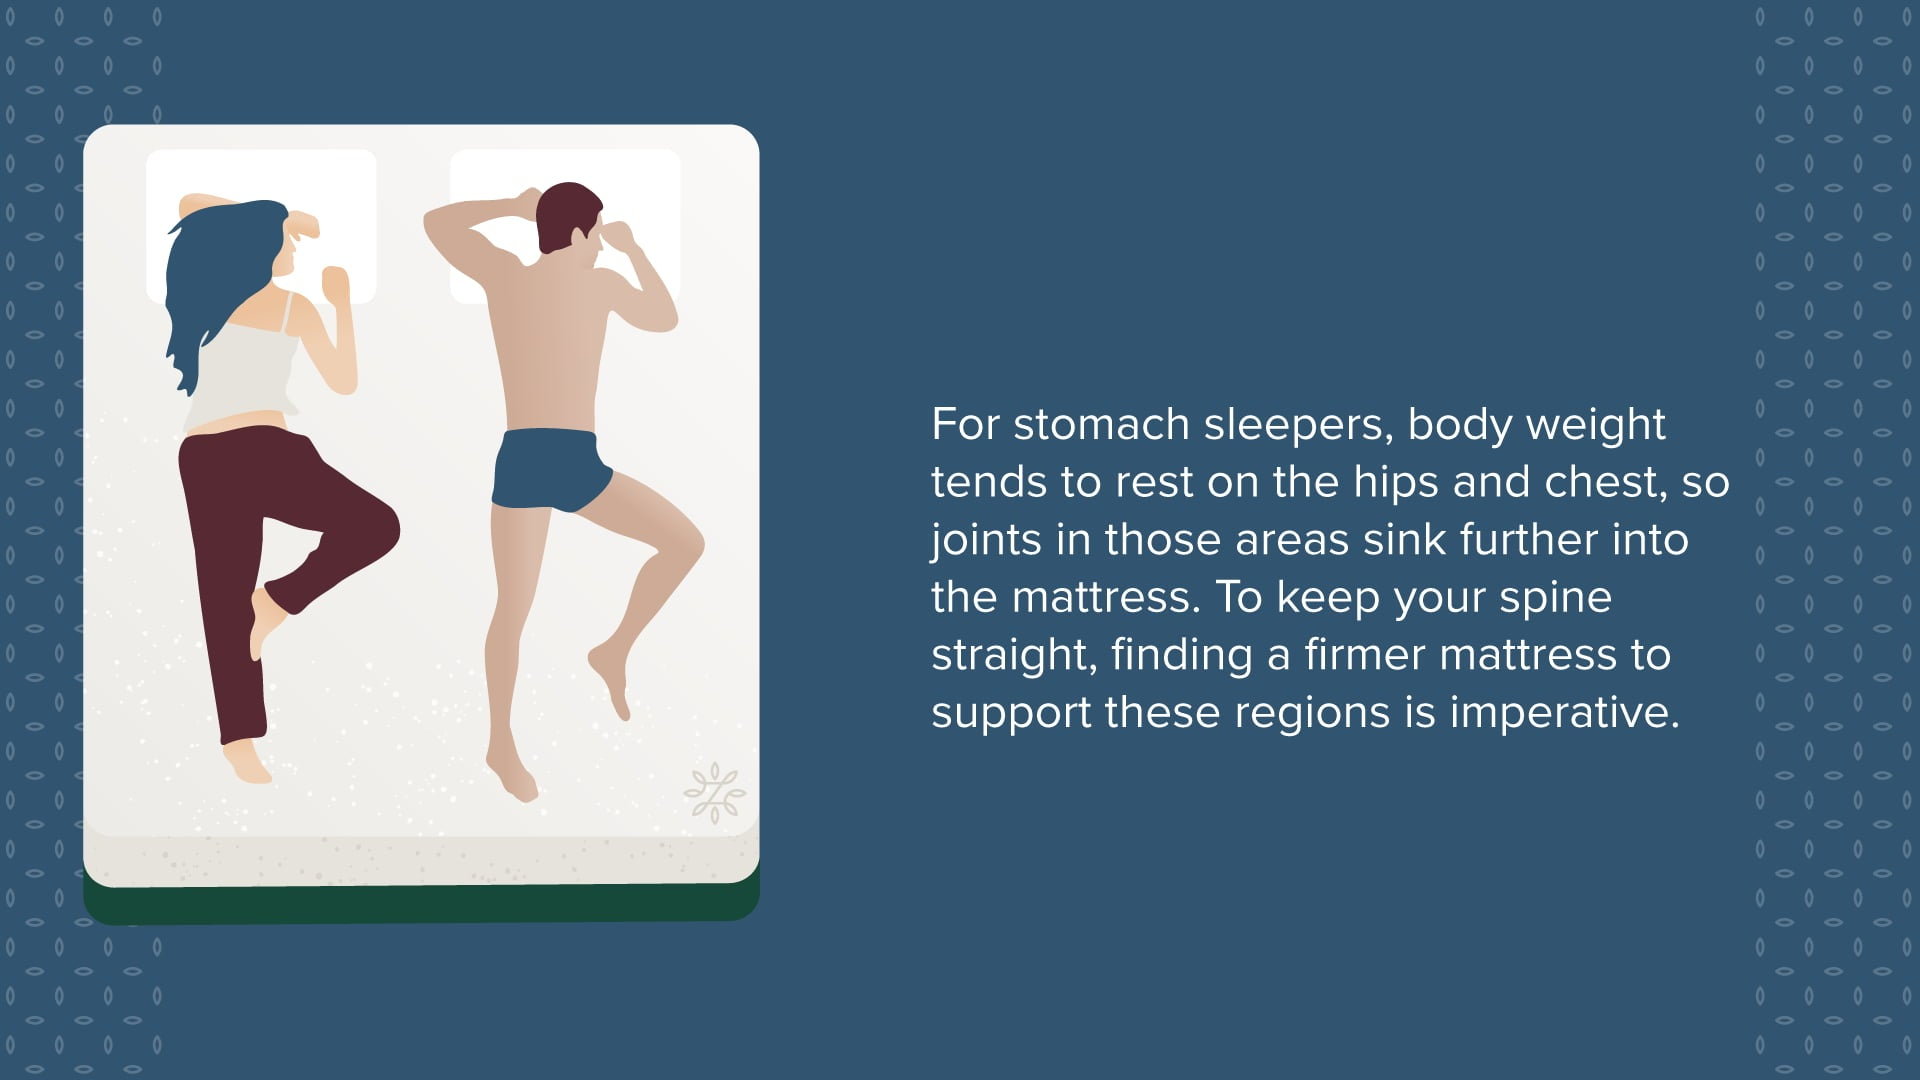 For stomach sleepers firmer mattress to support these regions is imperative